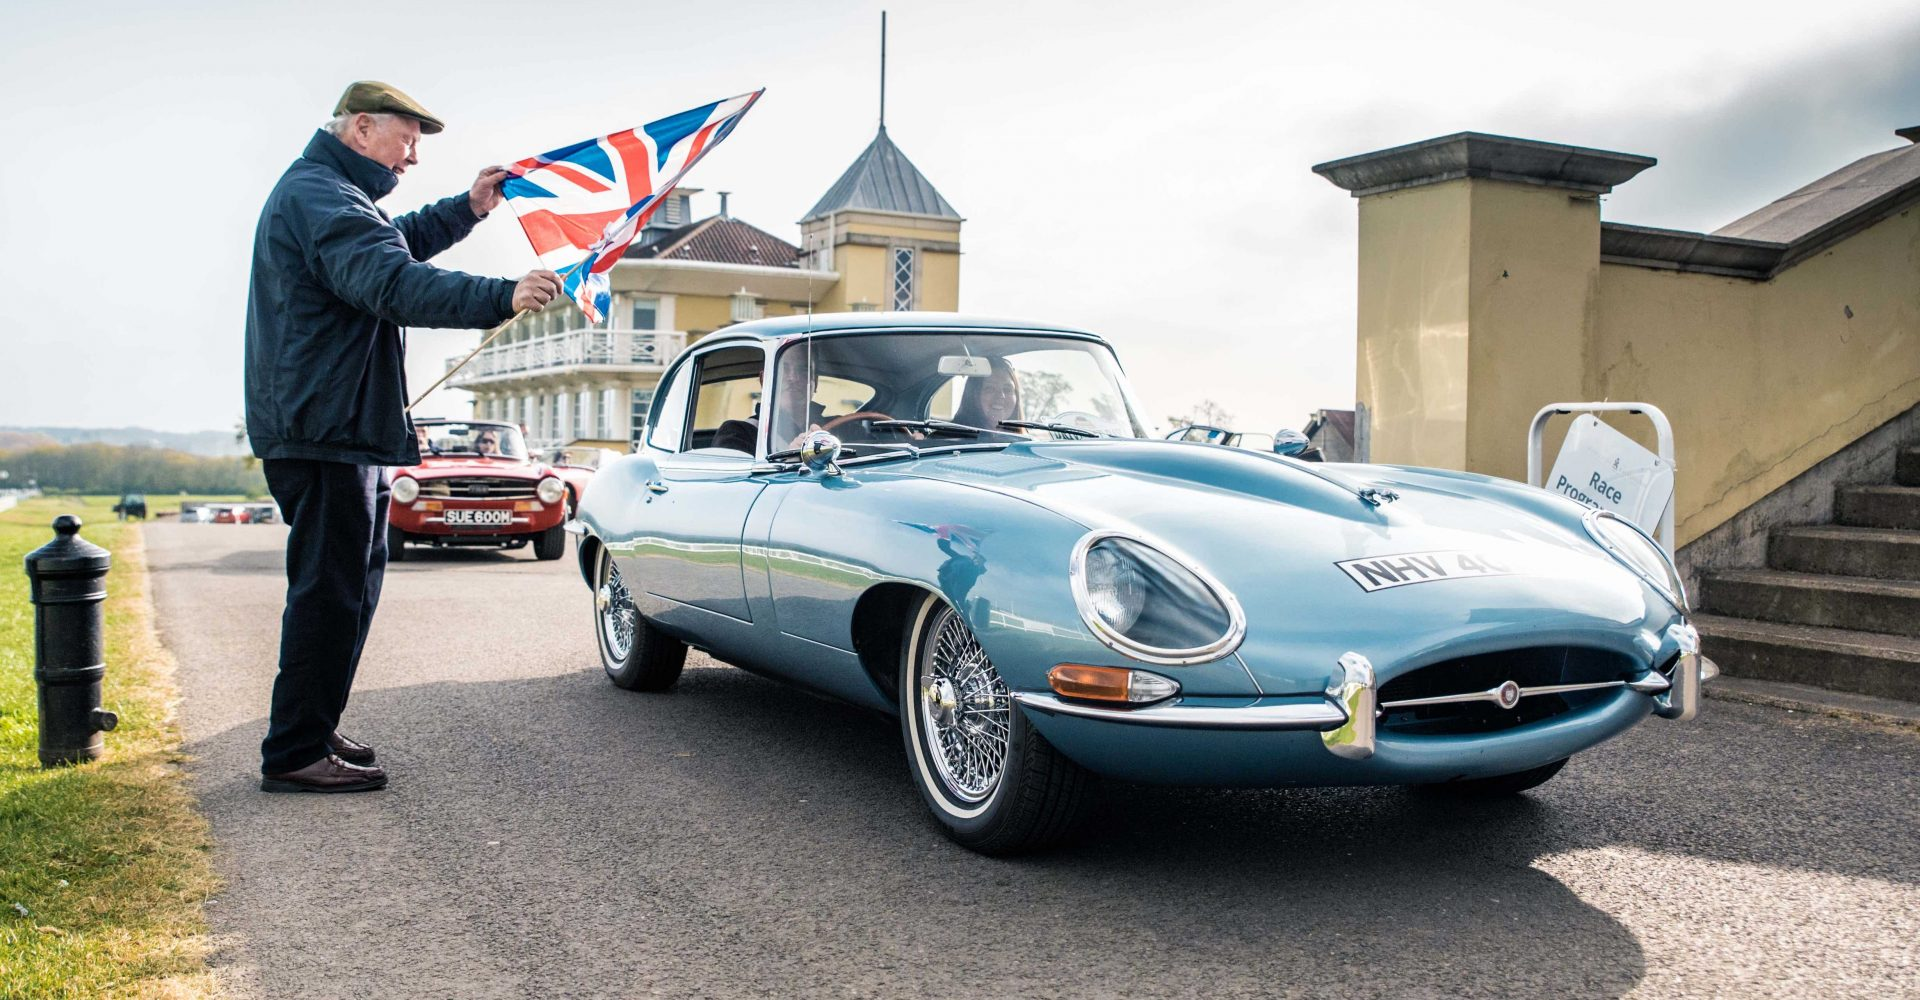 What does Brexit mean for the classic car market?